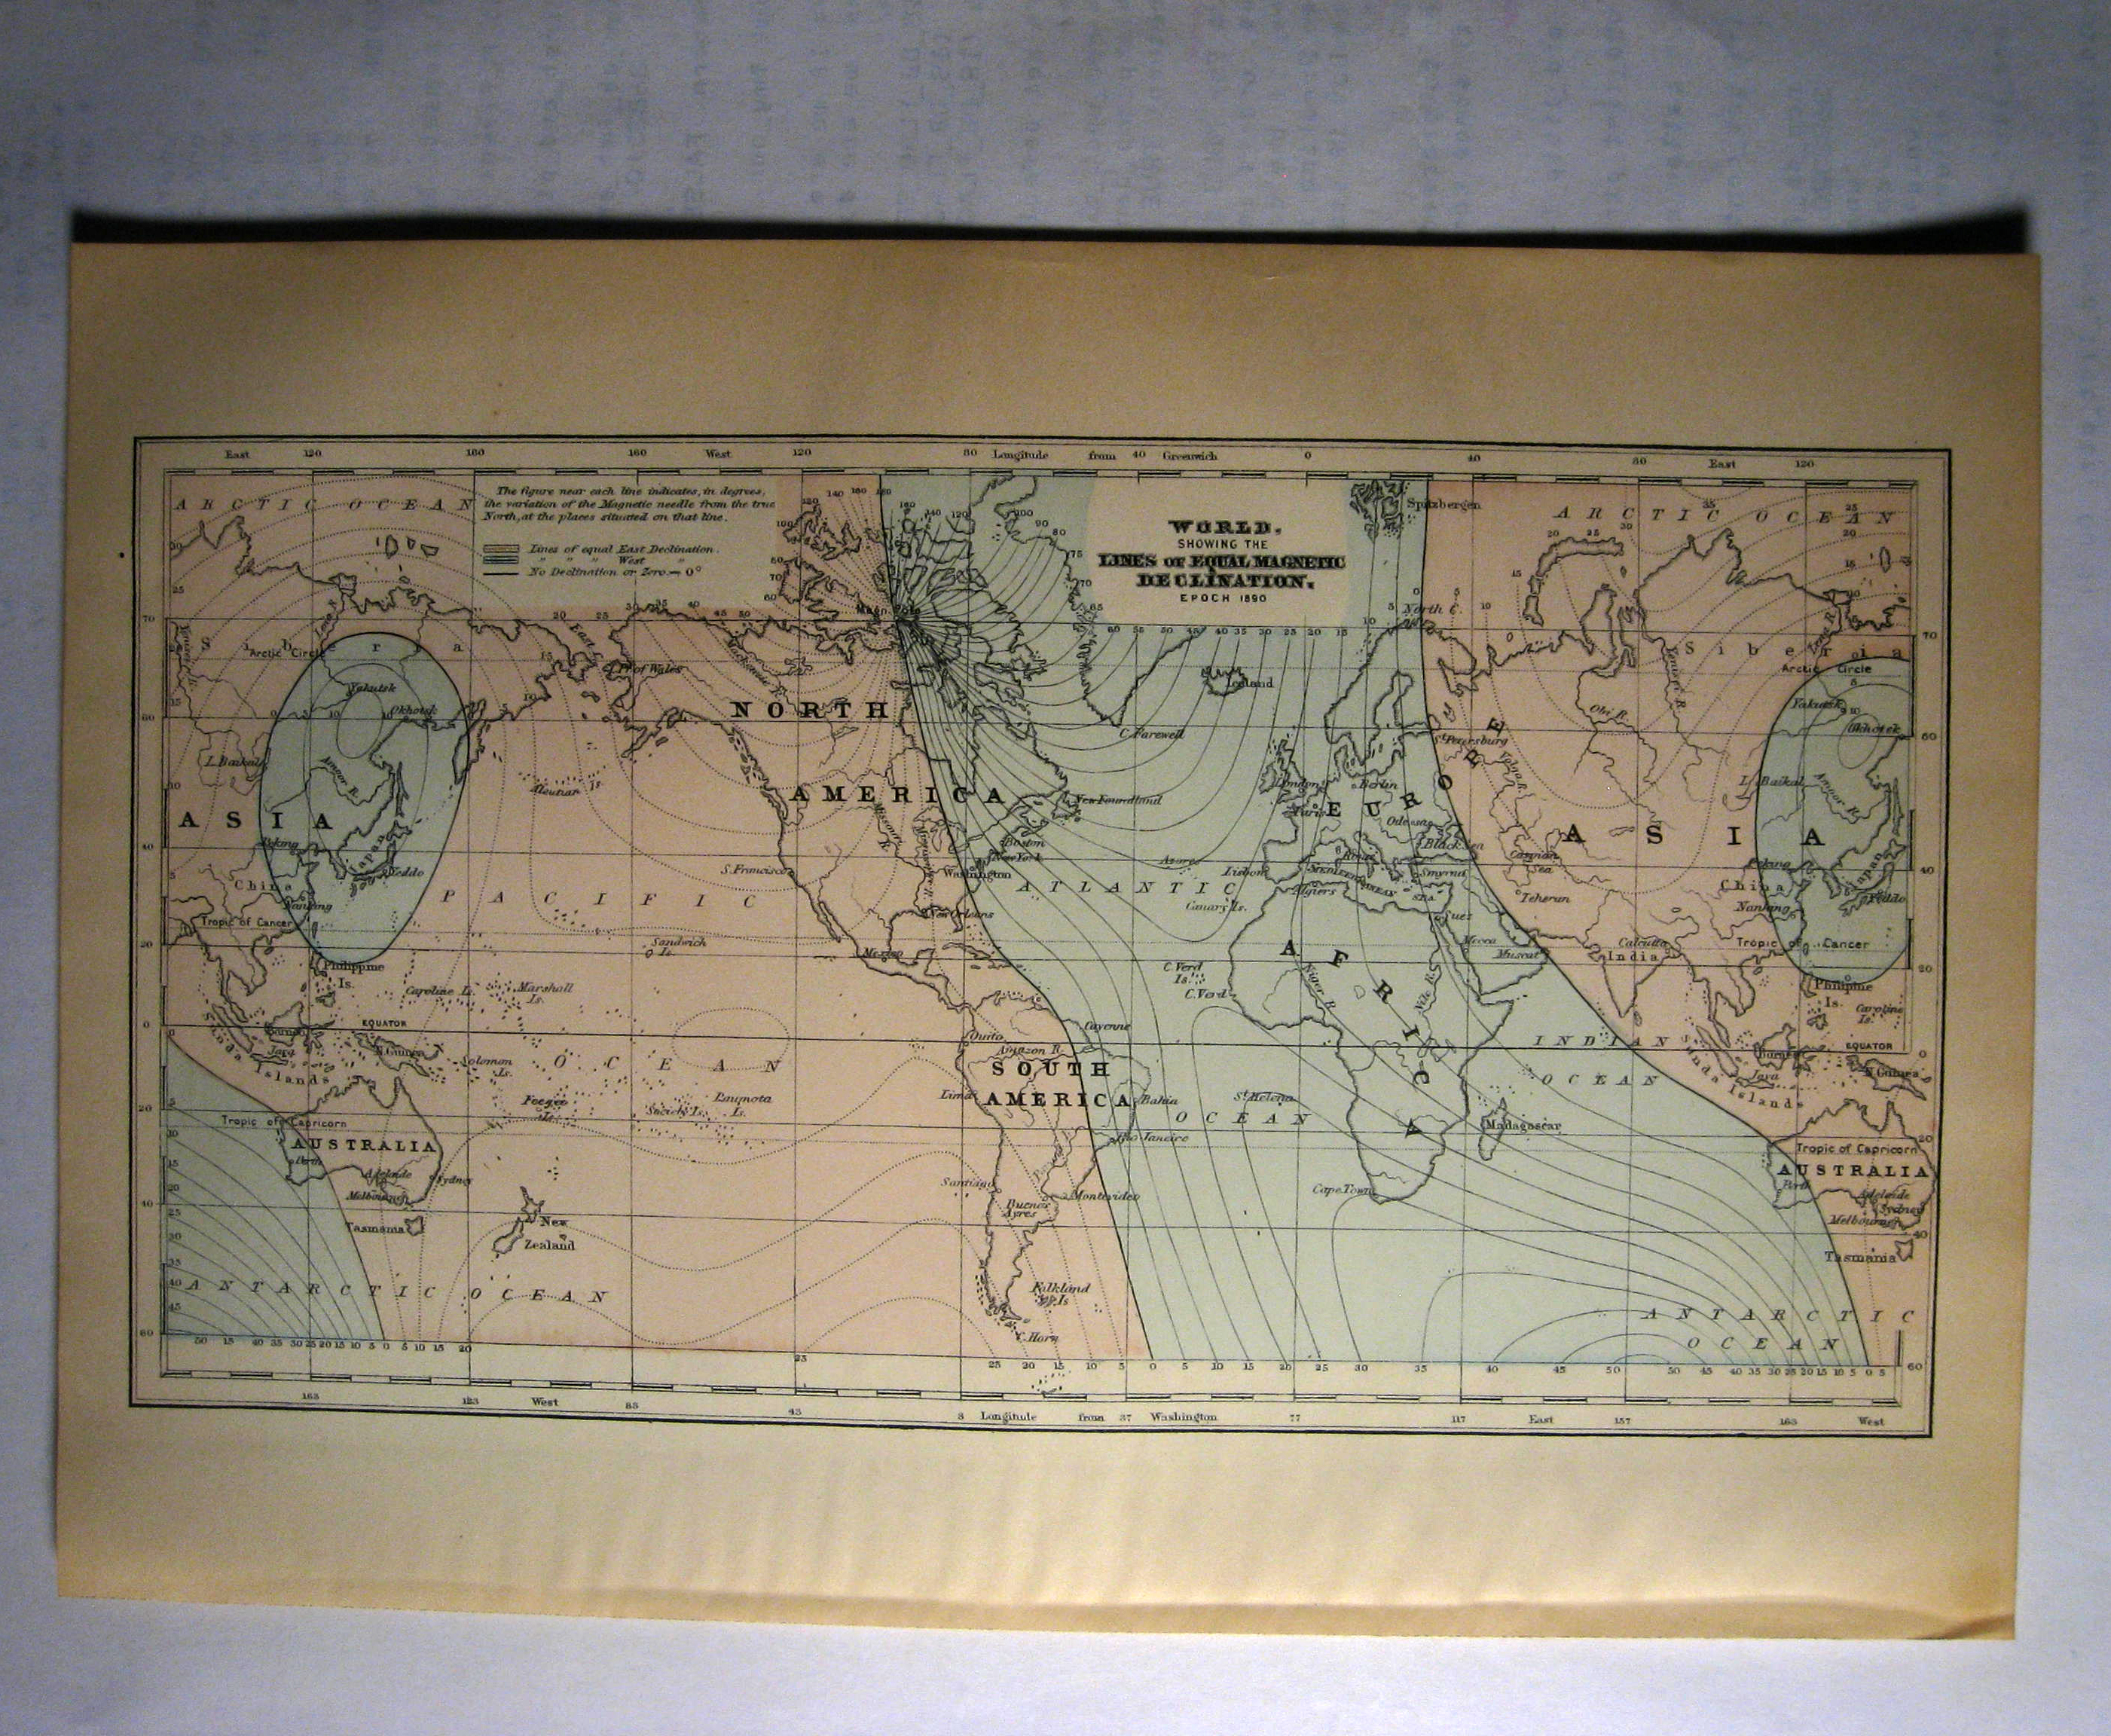 Johnson's  Map of the World Showing the Lines of Equal Magnetic Declination  - O